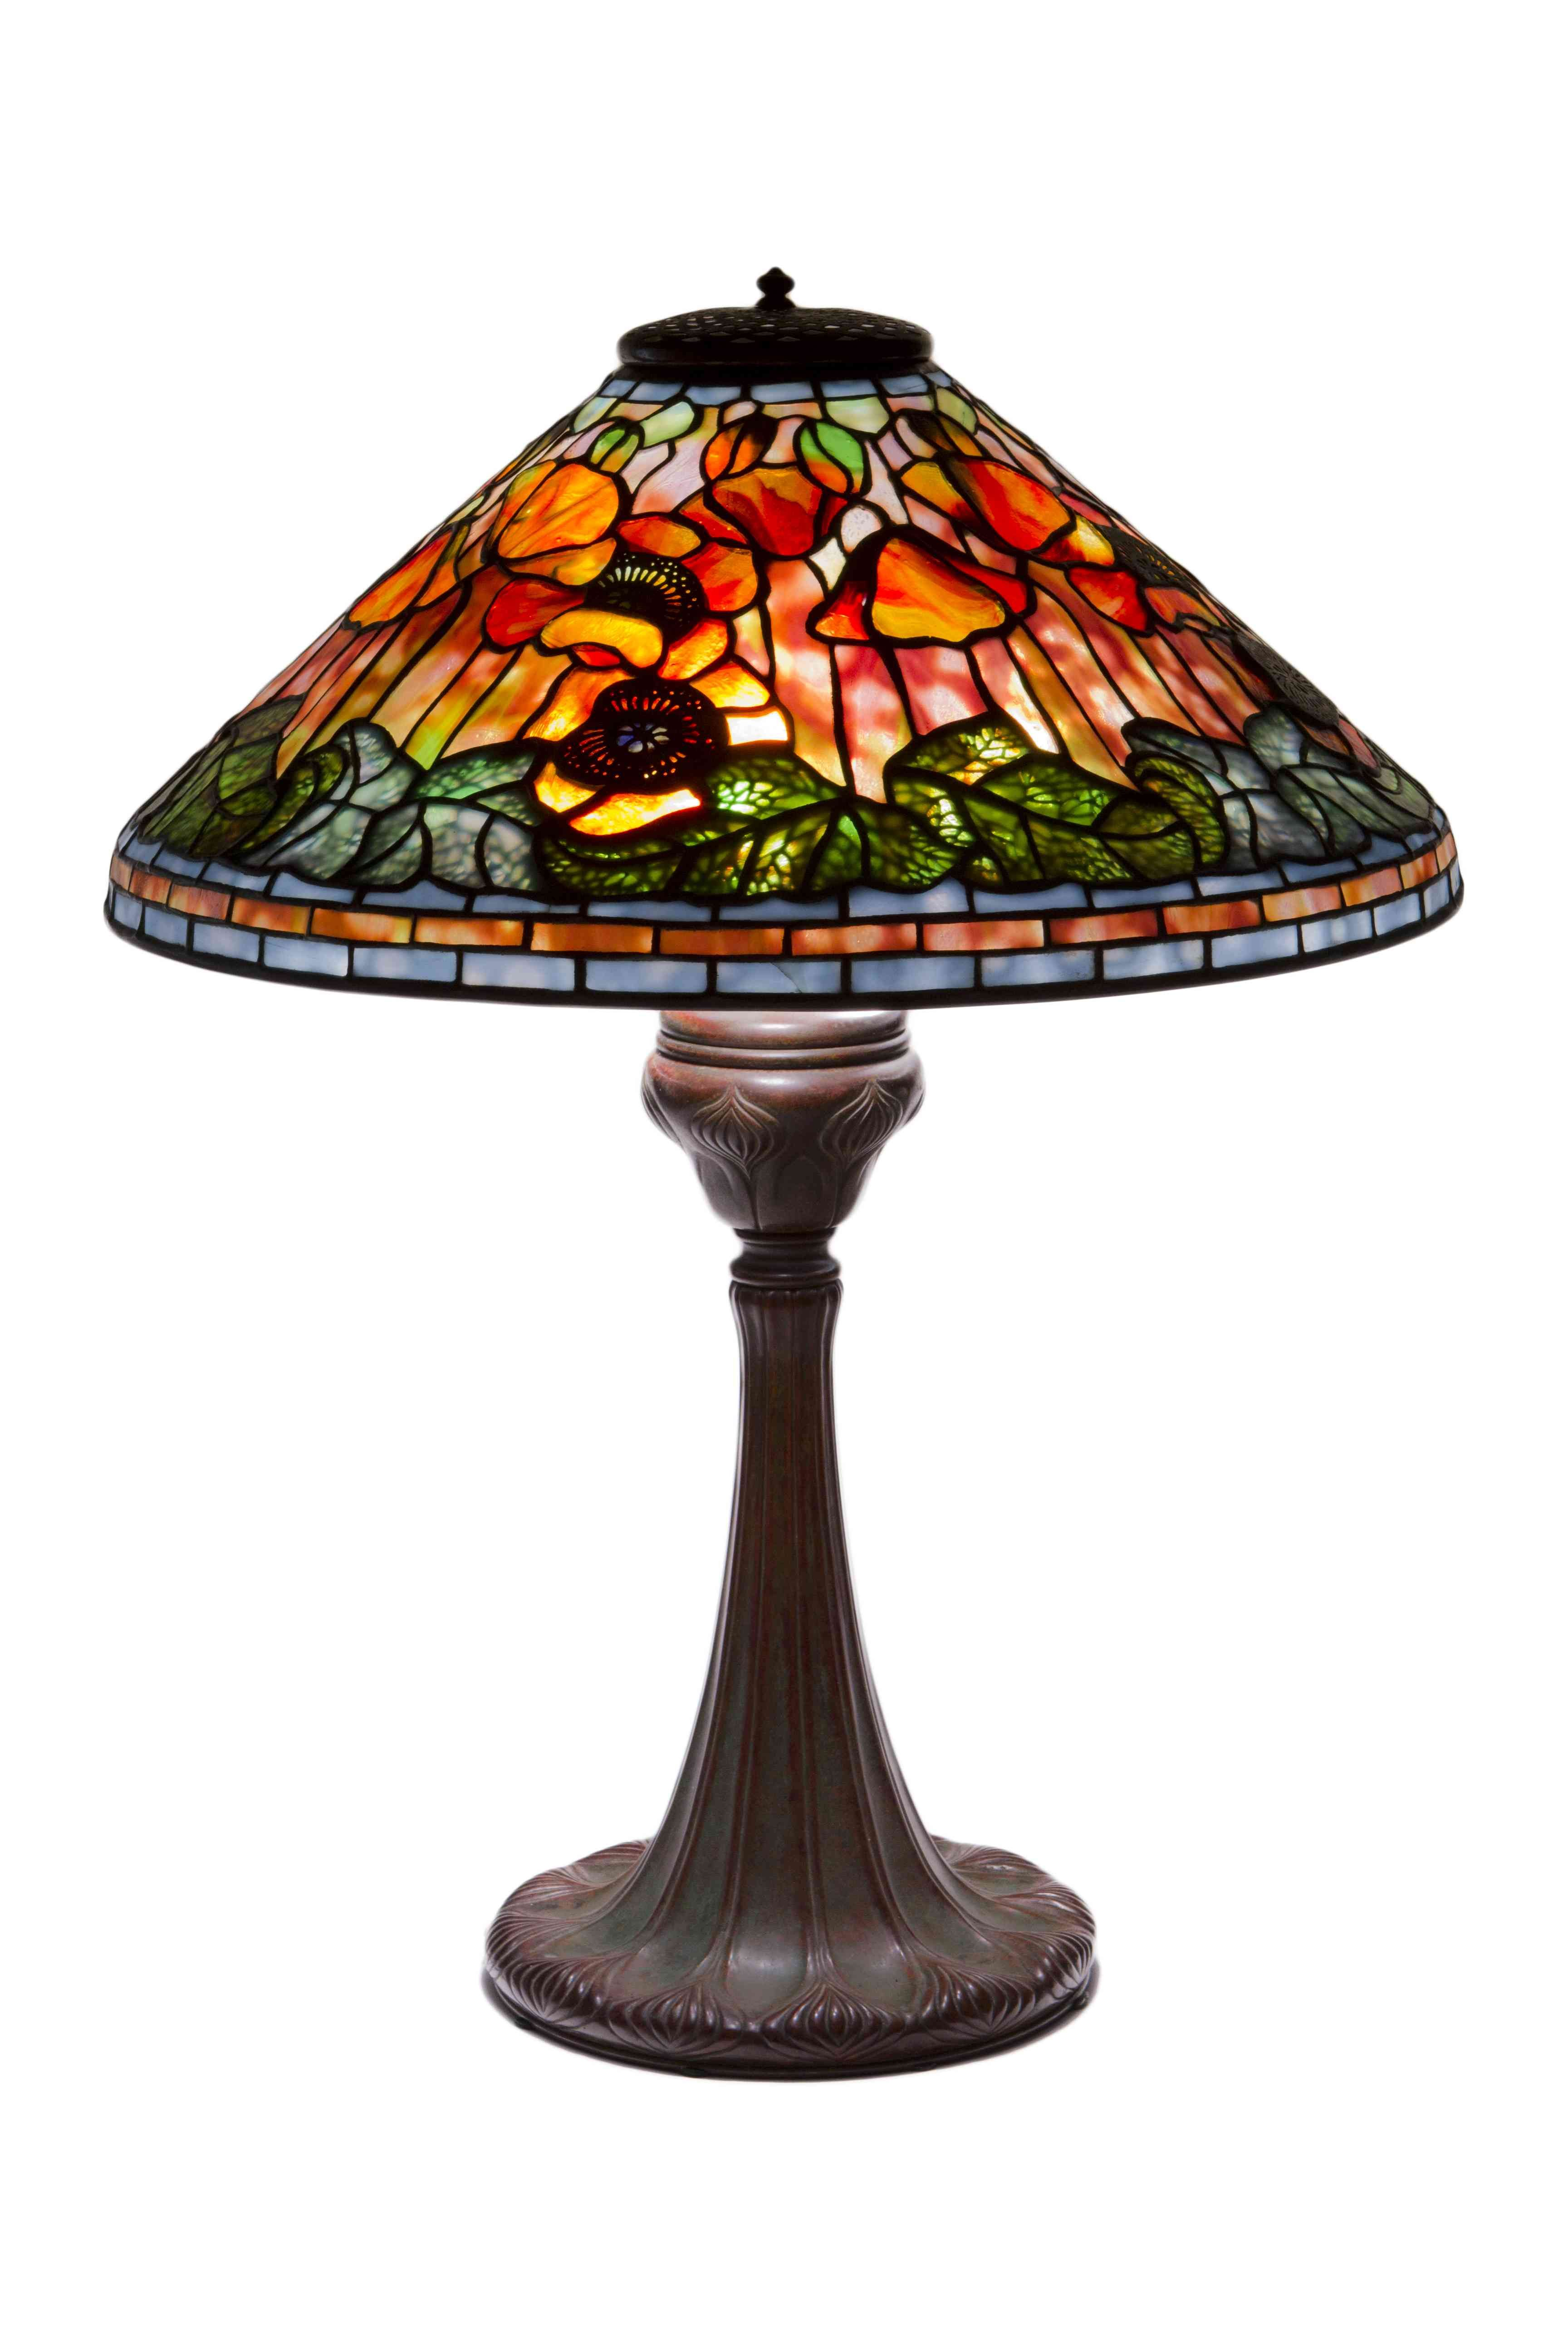 This american art nouveau table lamp is no longer available - Sunset Poppy Table Lamp An American Art Nouveau Patinated Bronze Leaded And Stained Glass